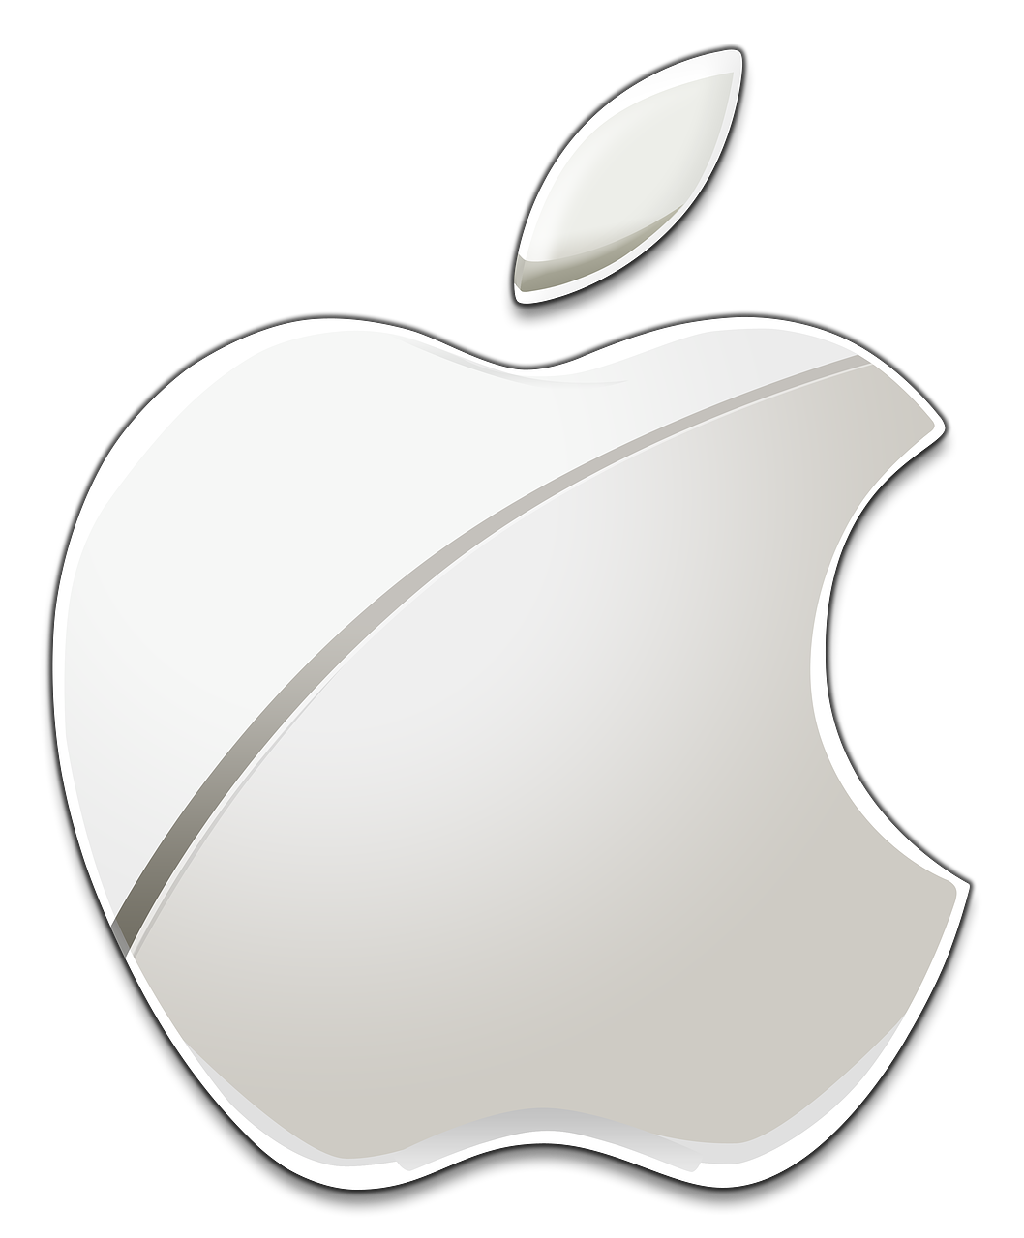 Apple symbol clipart jpg freeuse download Apple logo PNG images free download jpg freeuse download